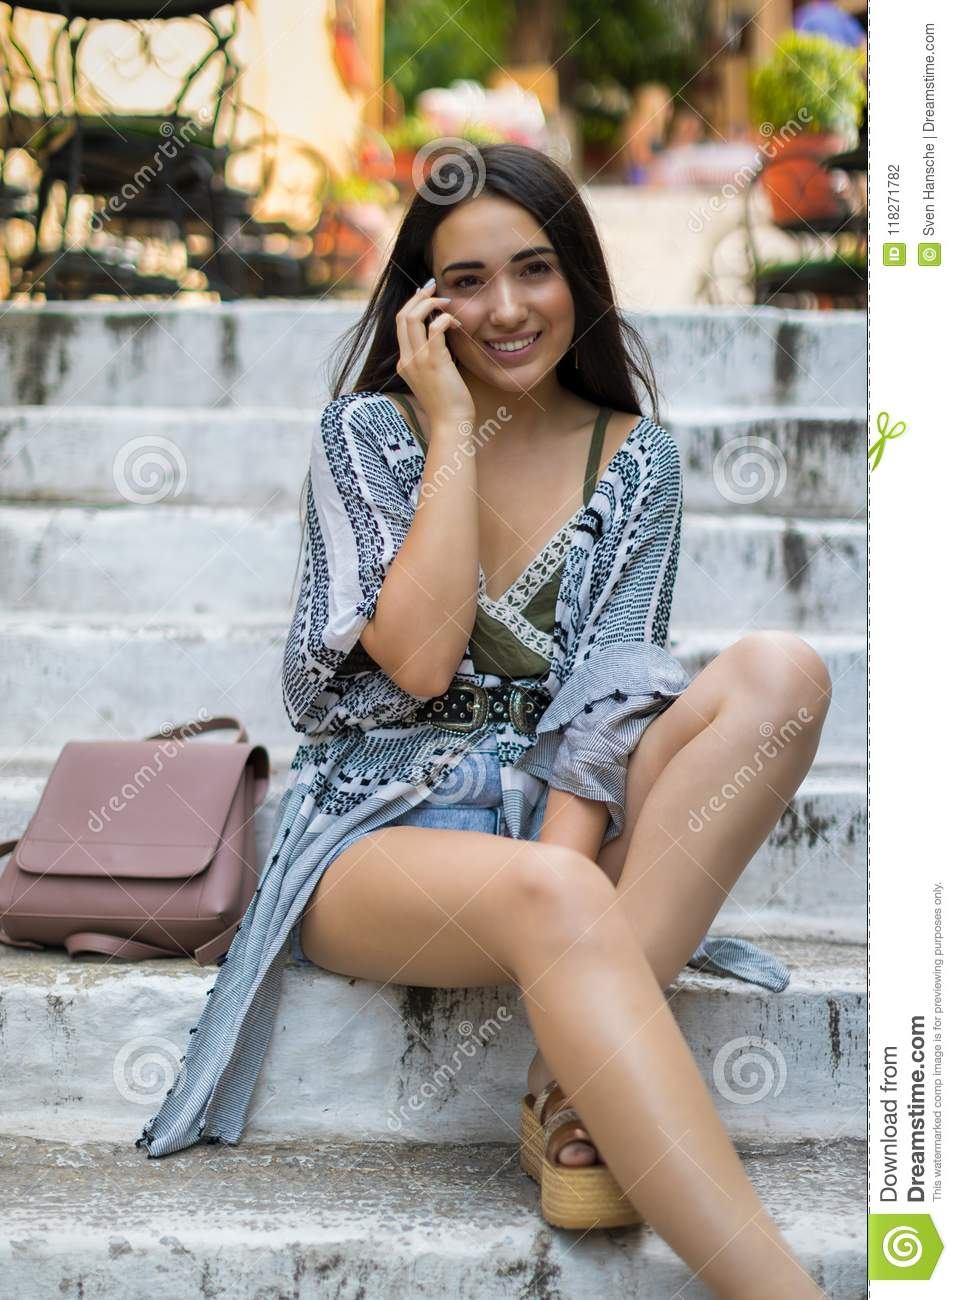 Young bohemian like dressed woman in mediterranean city concept